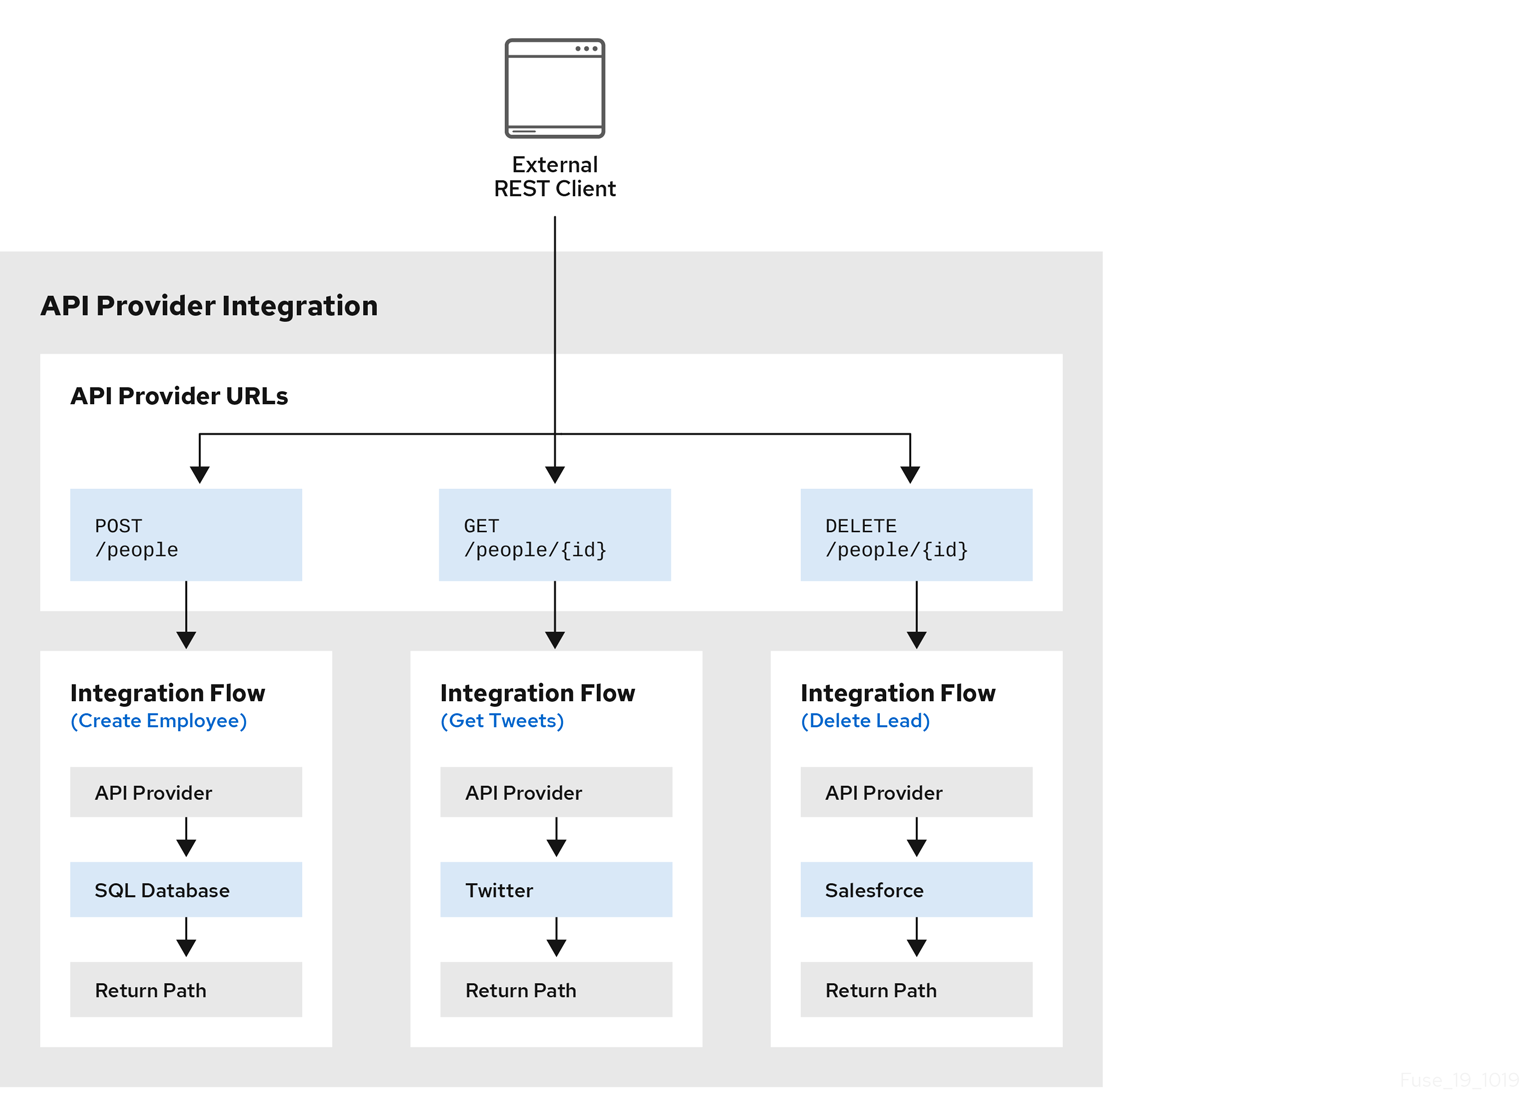 API provider integration with 3 flows